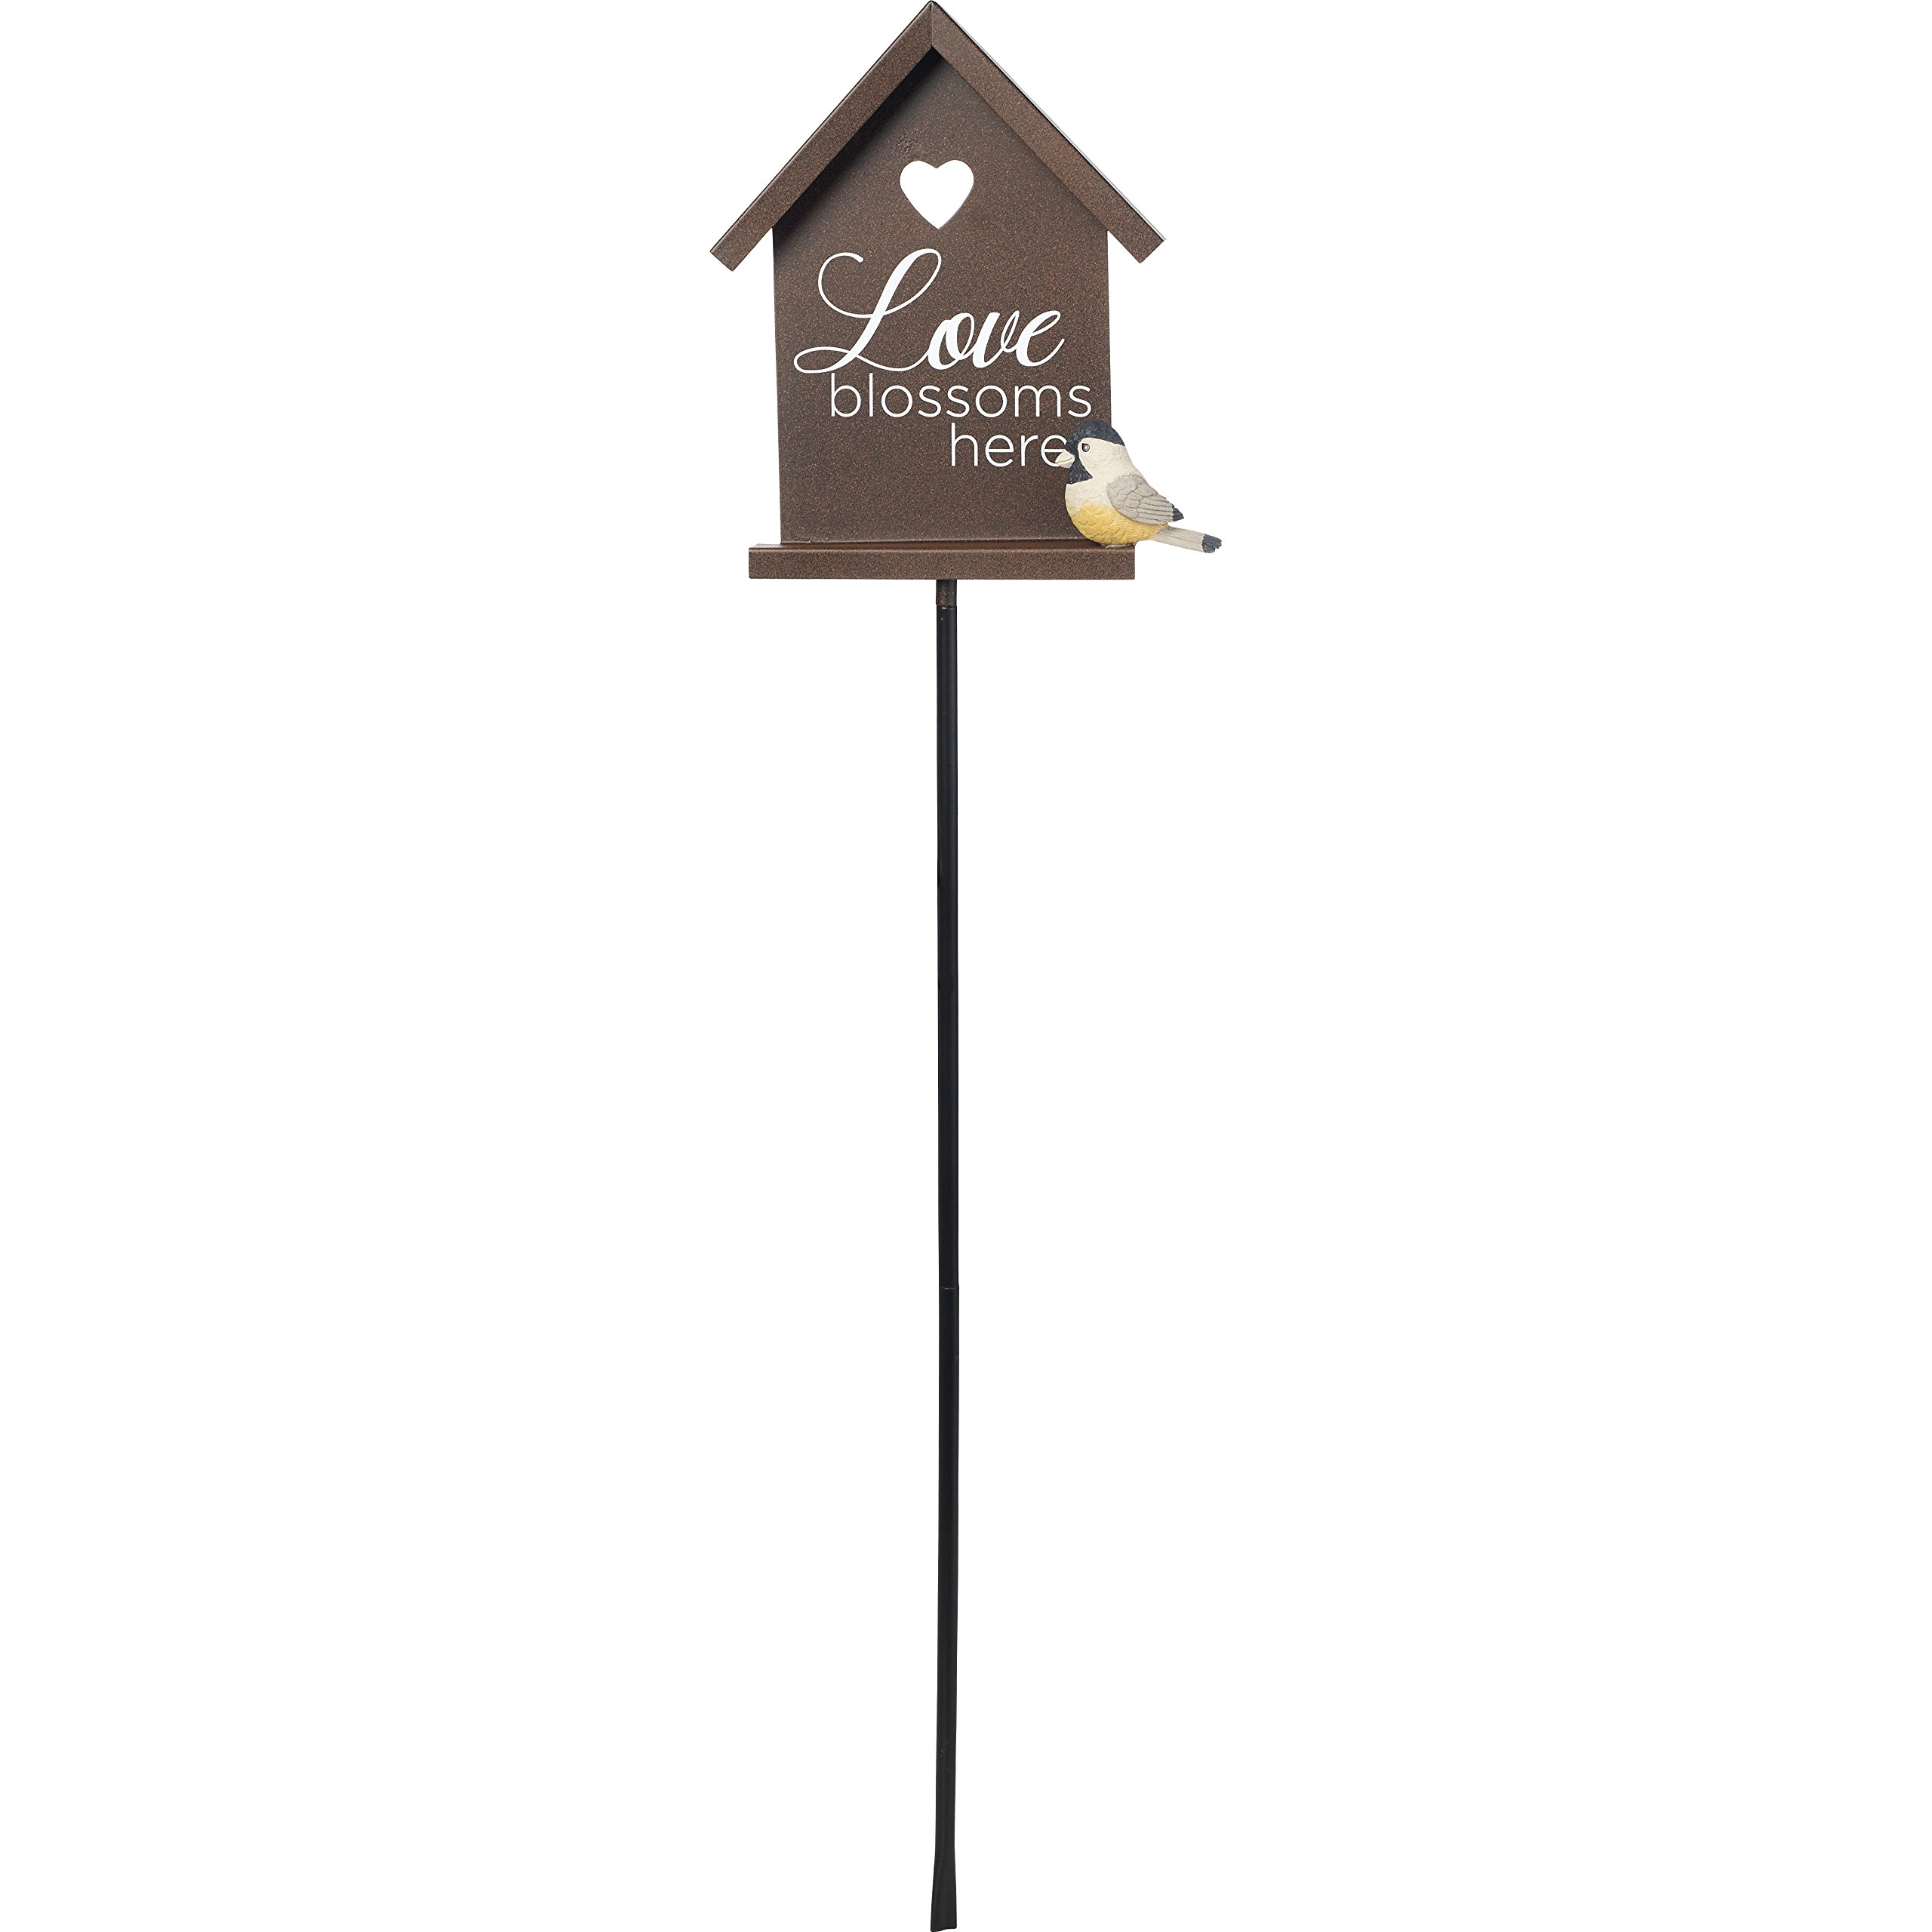 Precious Moments Garden Gifts by 171446 Love Blossoms Here Decorative Metal Garden Stake With Resin Bird Accent Yard Decor, Bronze, 16-inch High